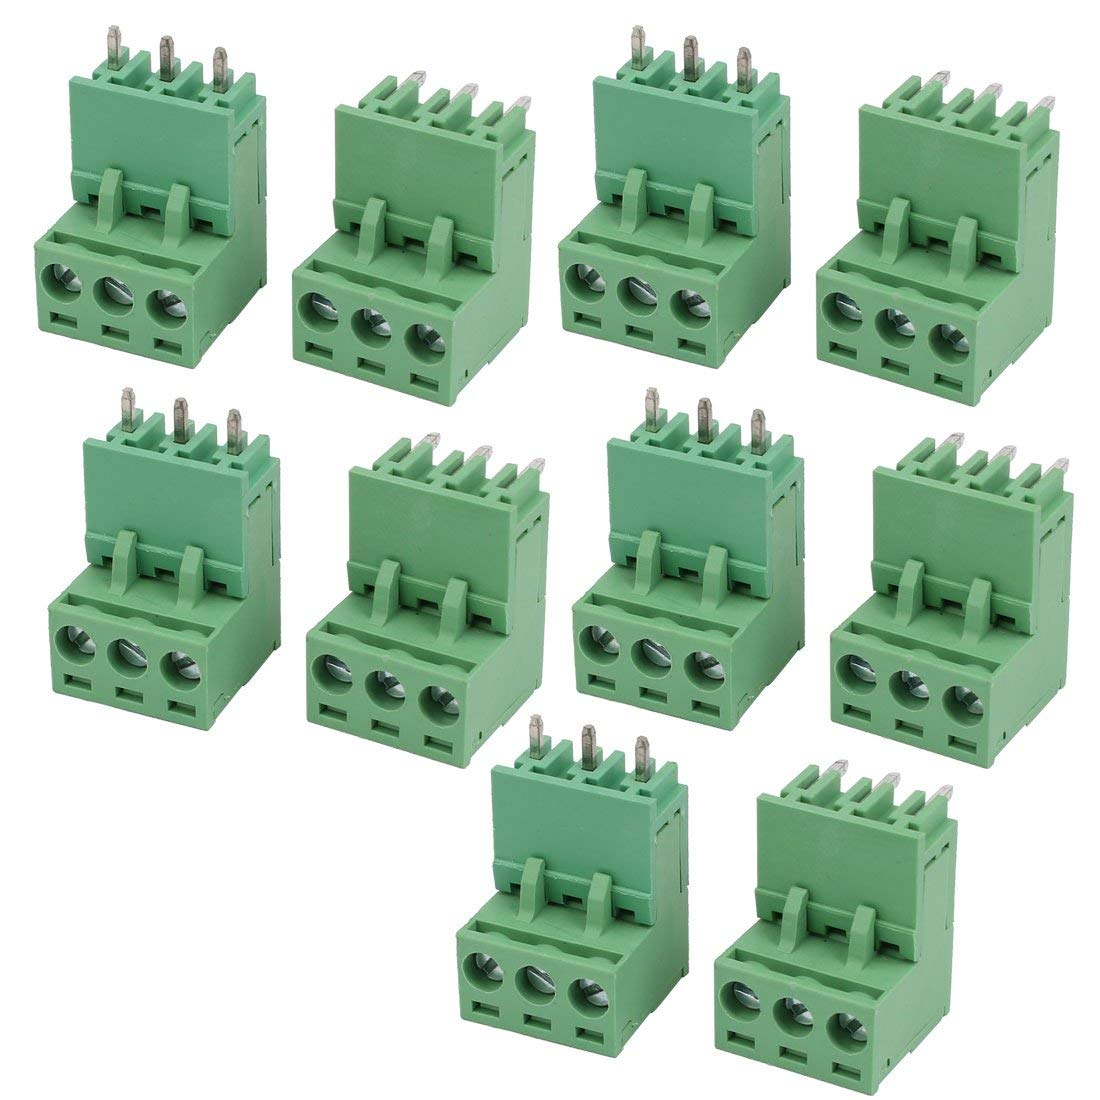 uxcell 10 Sets AC 300V 10A 5.08mm Pitch 3P PCB Terminal Block Female Male Wire Connector